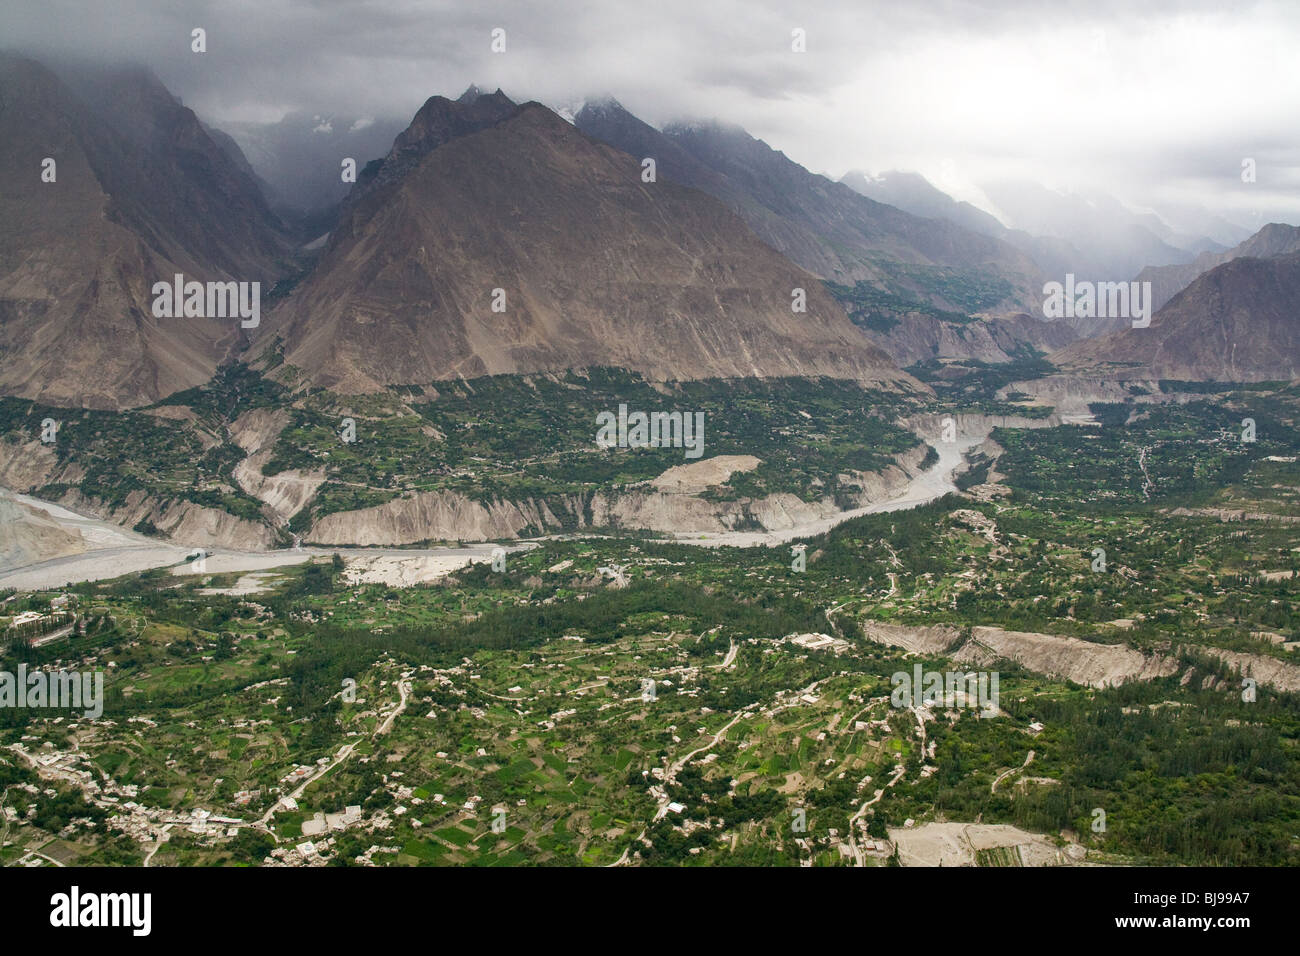 Baltistan Hunza Karakoram Karimabad Pakistan Stock Photo